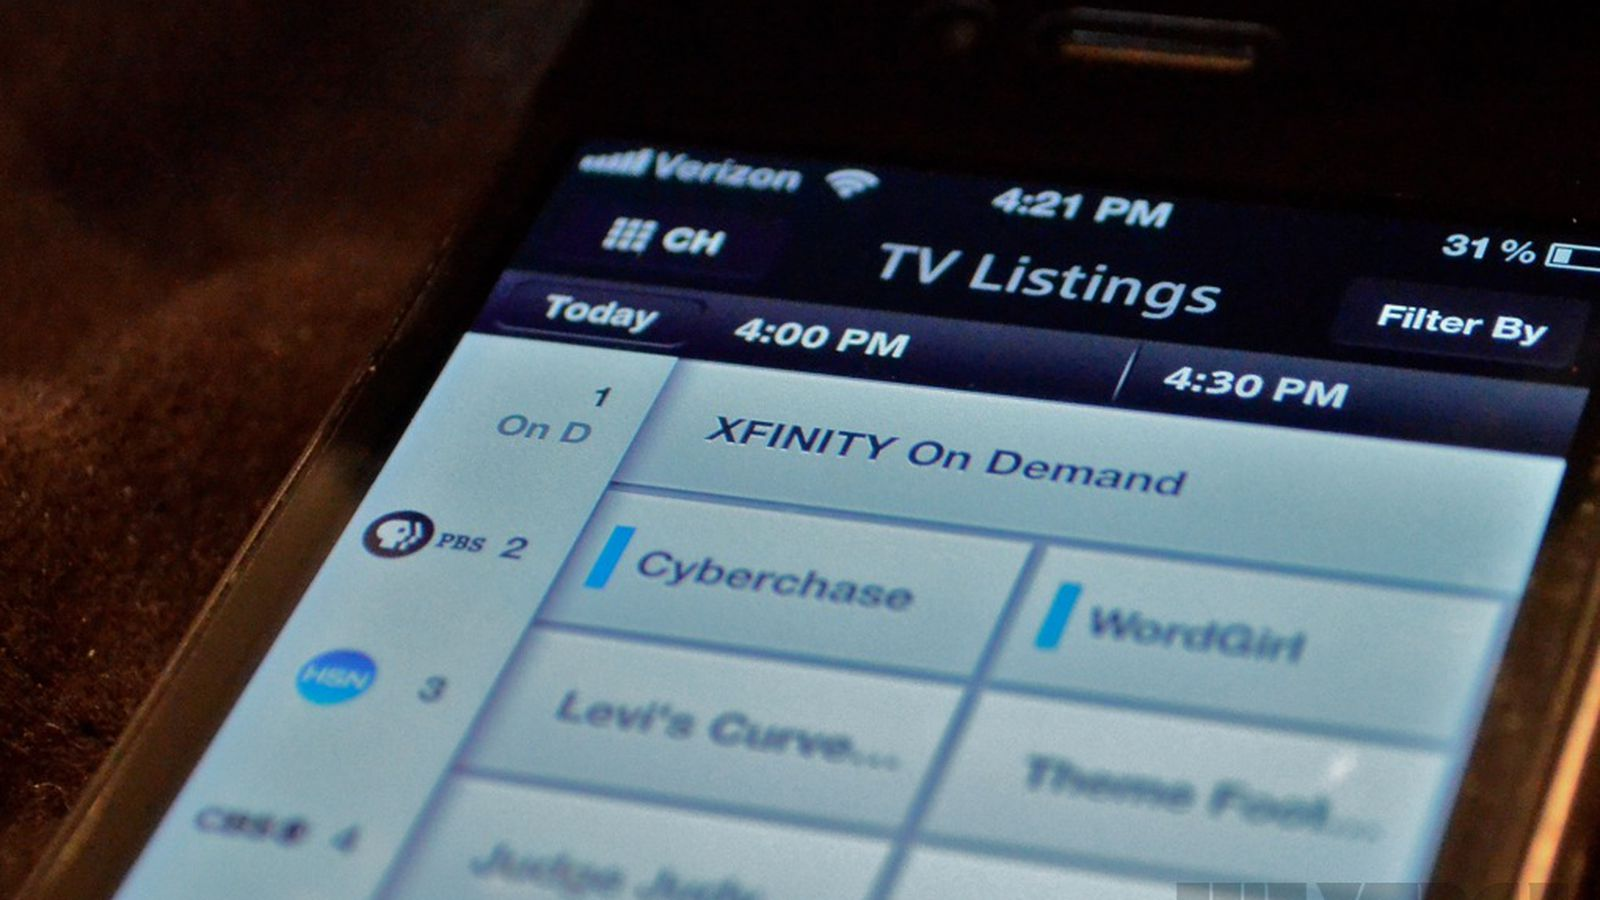 Comcast Tv And Internet >> Comcast abandons 250GB data caps, will trial tiered plans ...